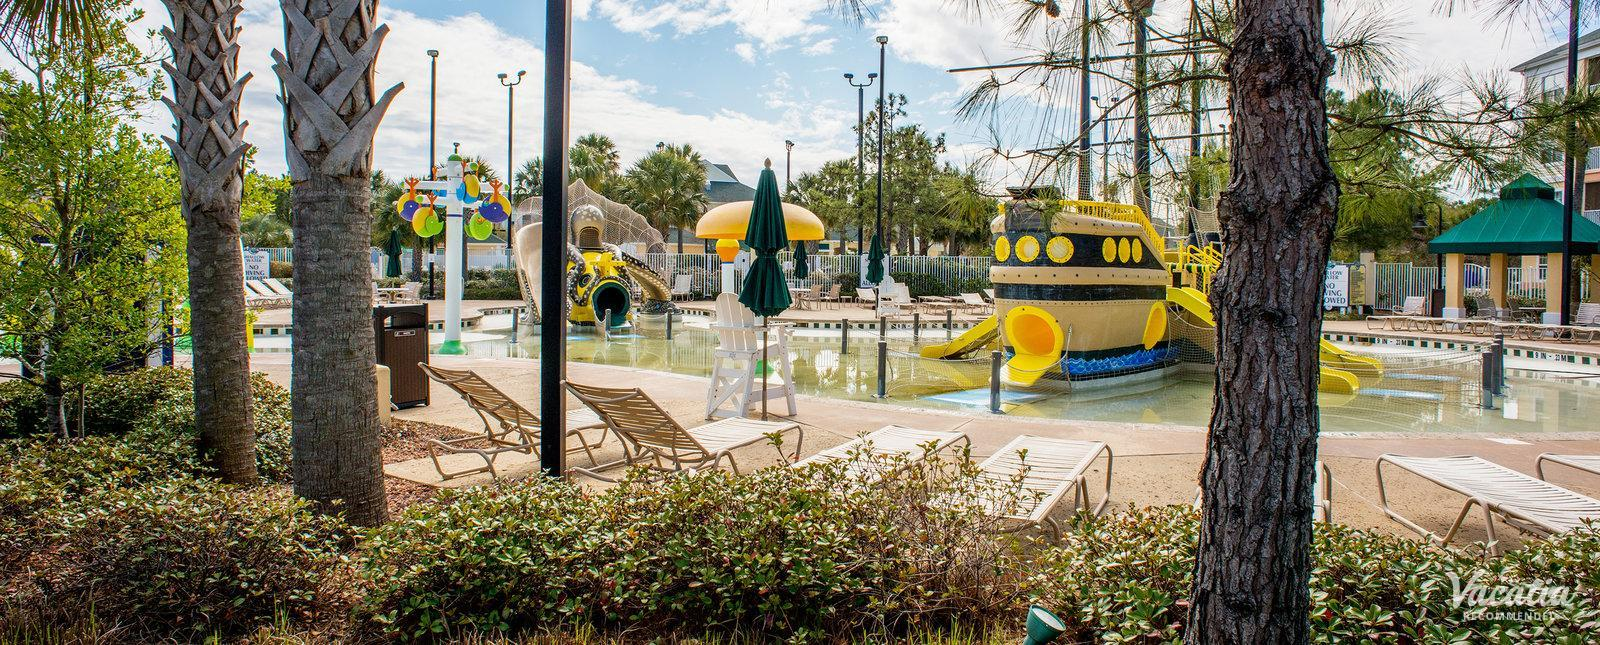 Sheraton Broadway Plantation Resort Villas kids playground area